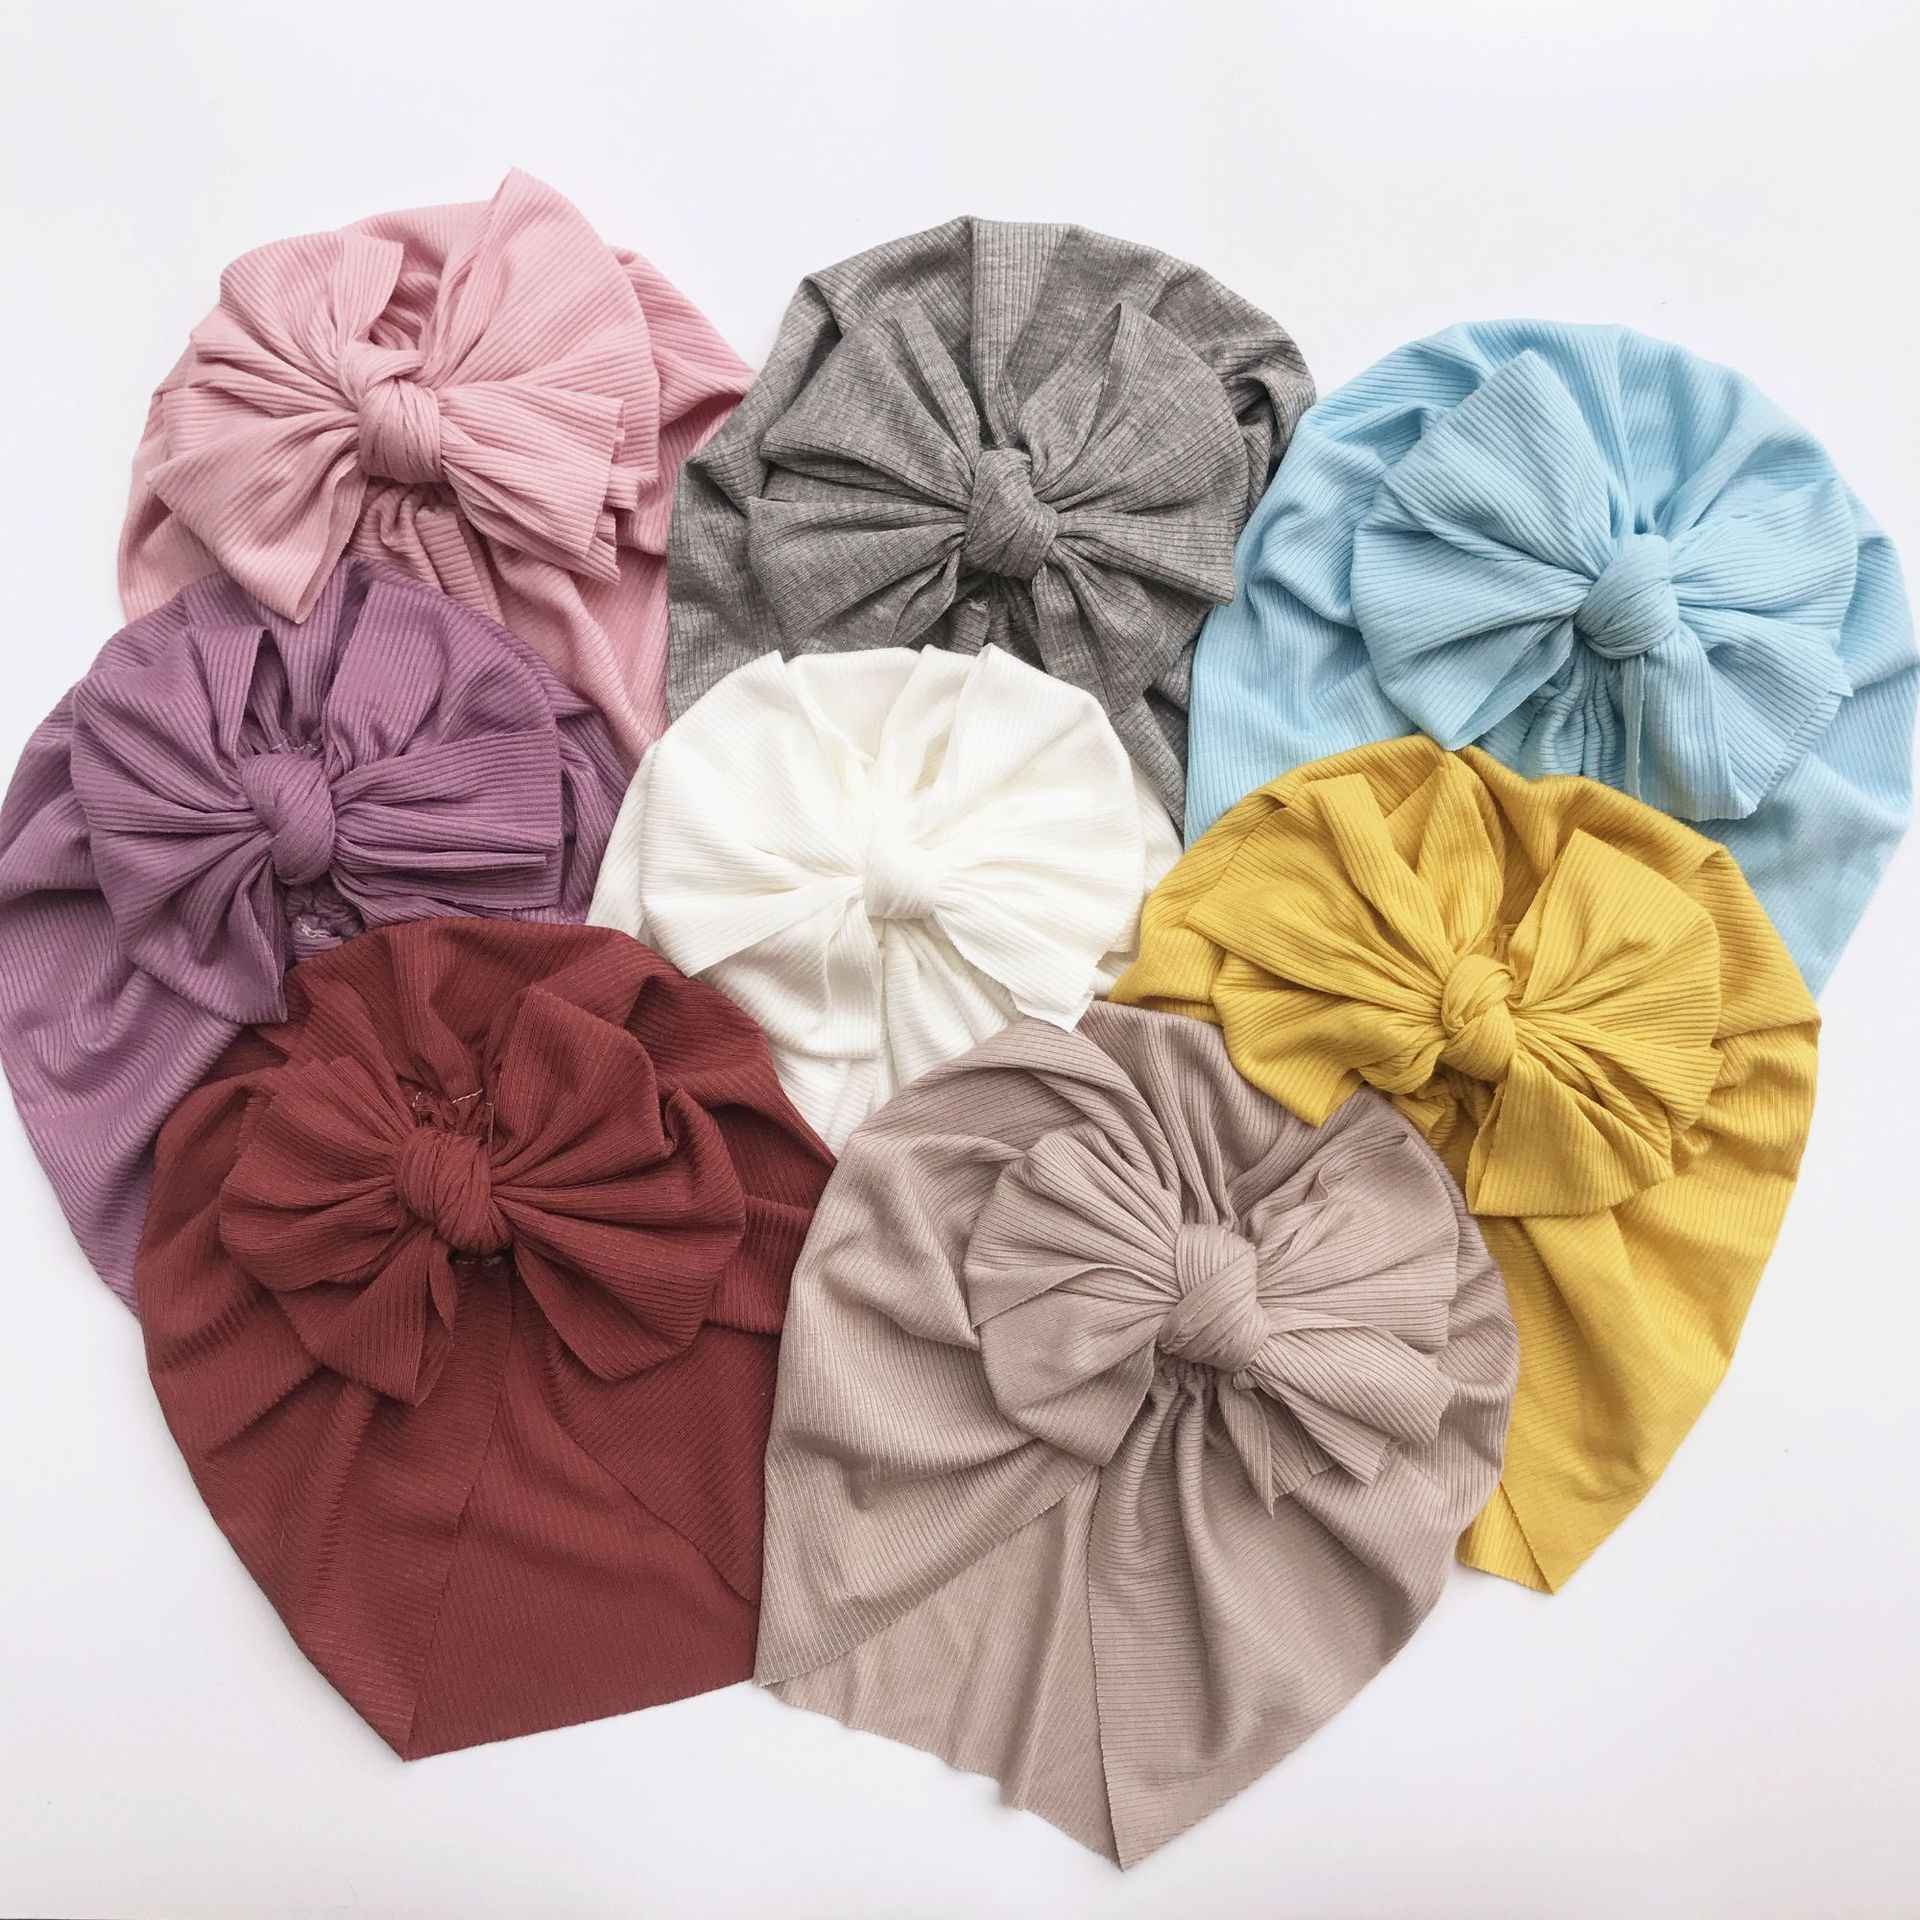 Lovely Flower Baby Hat Soft Cotton Baby Girl Hat Turban Infant Toddler Newborn Baby Cap Bonnet Headwraps Kids Hat Beanie